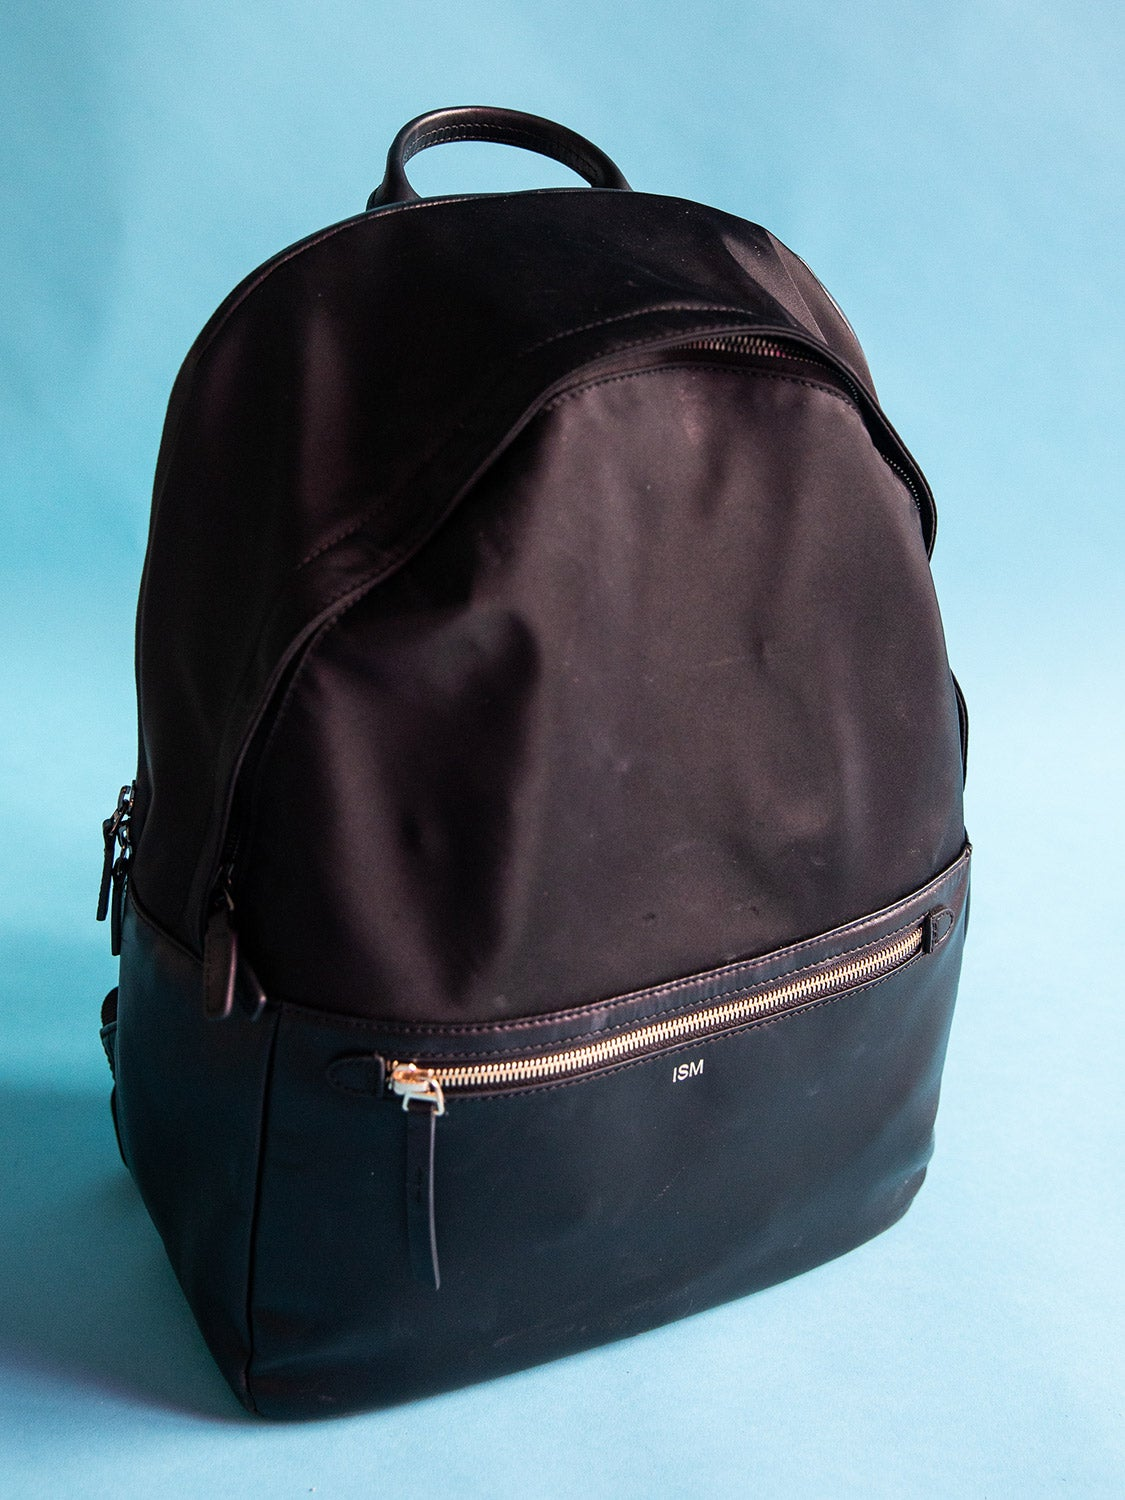 ISM Leather Bag